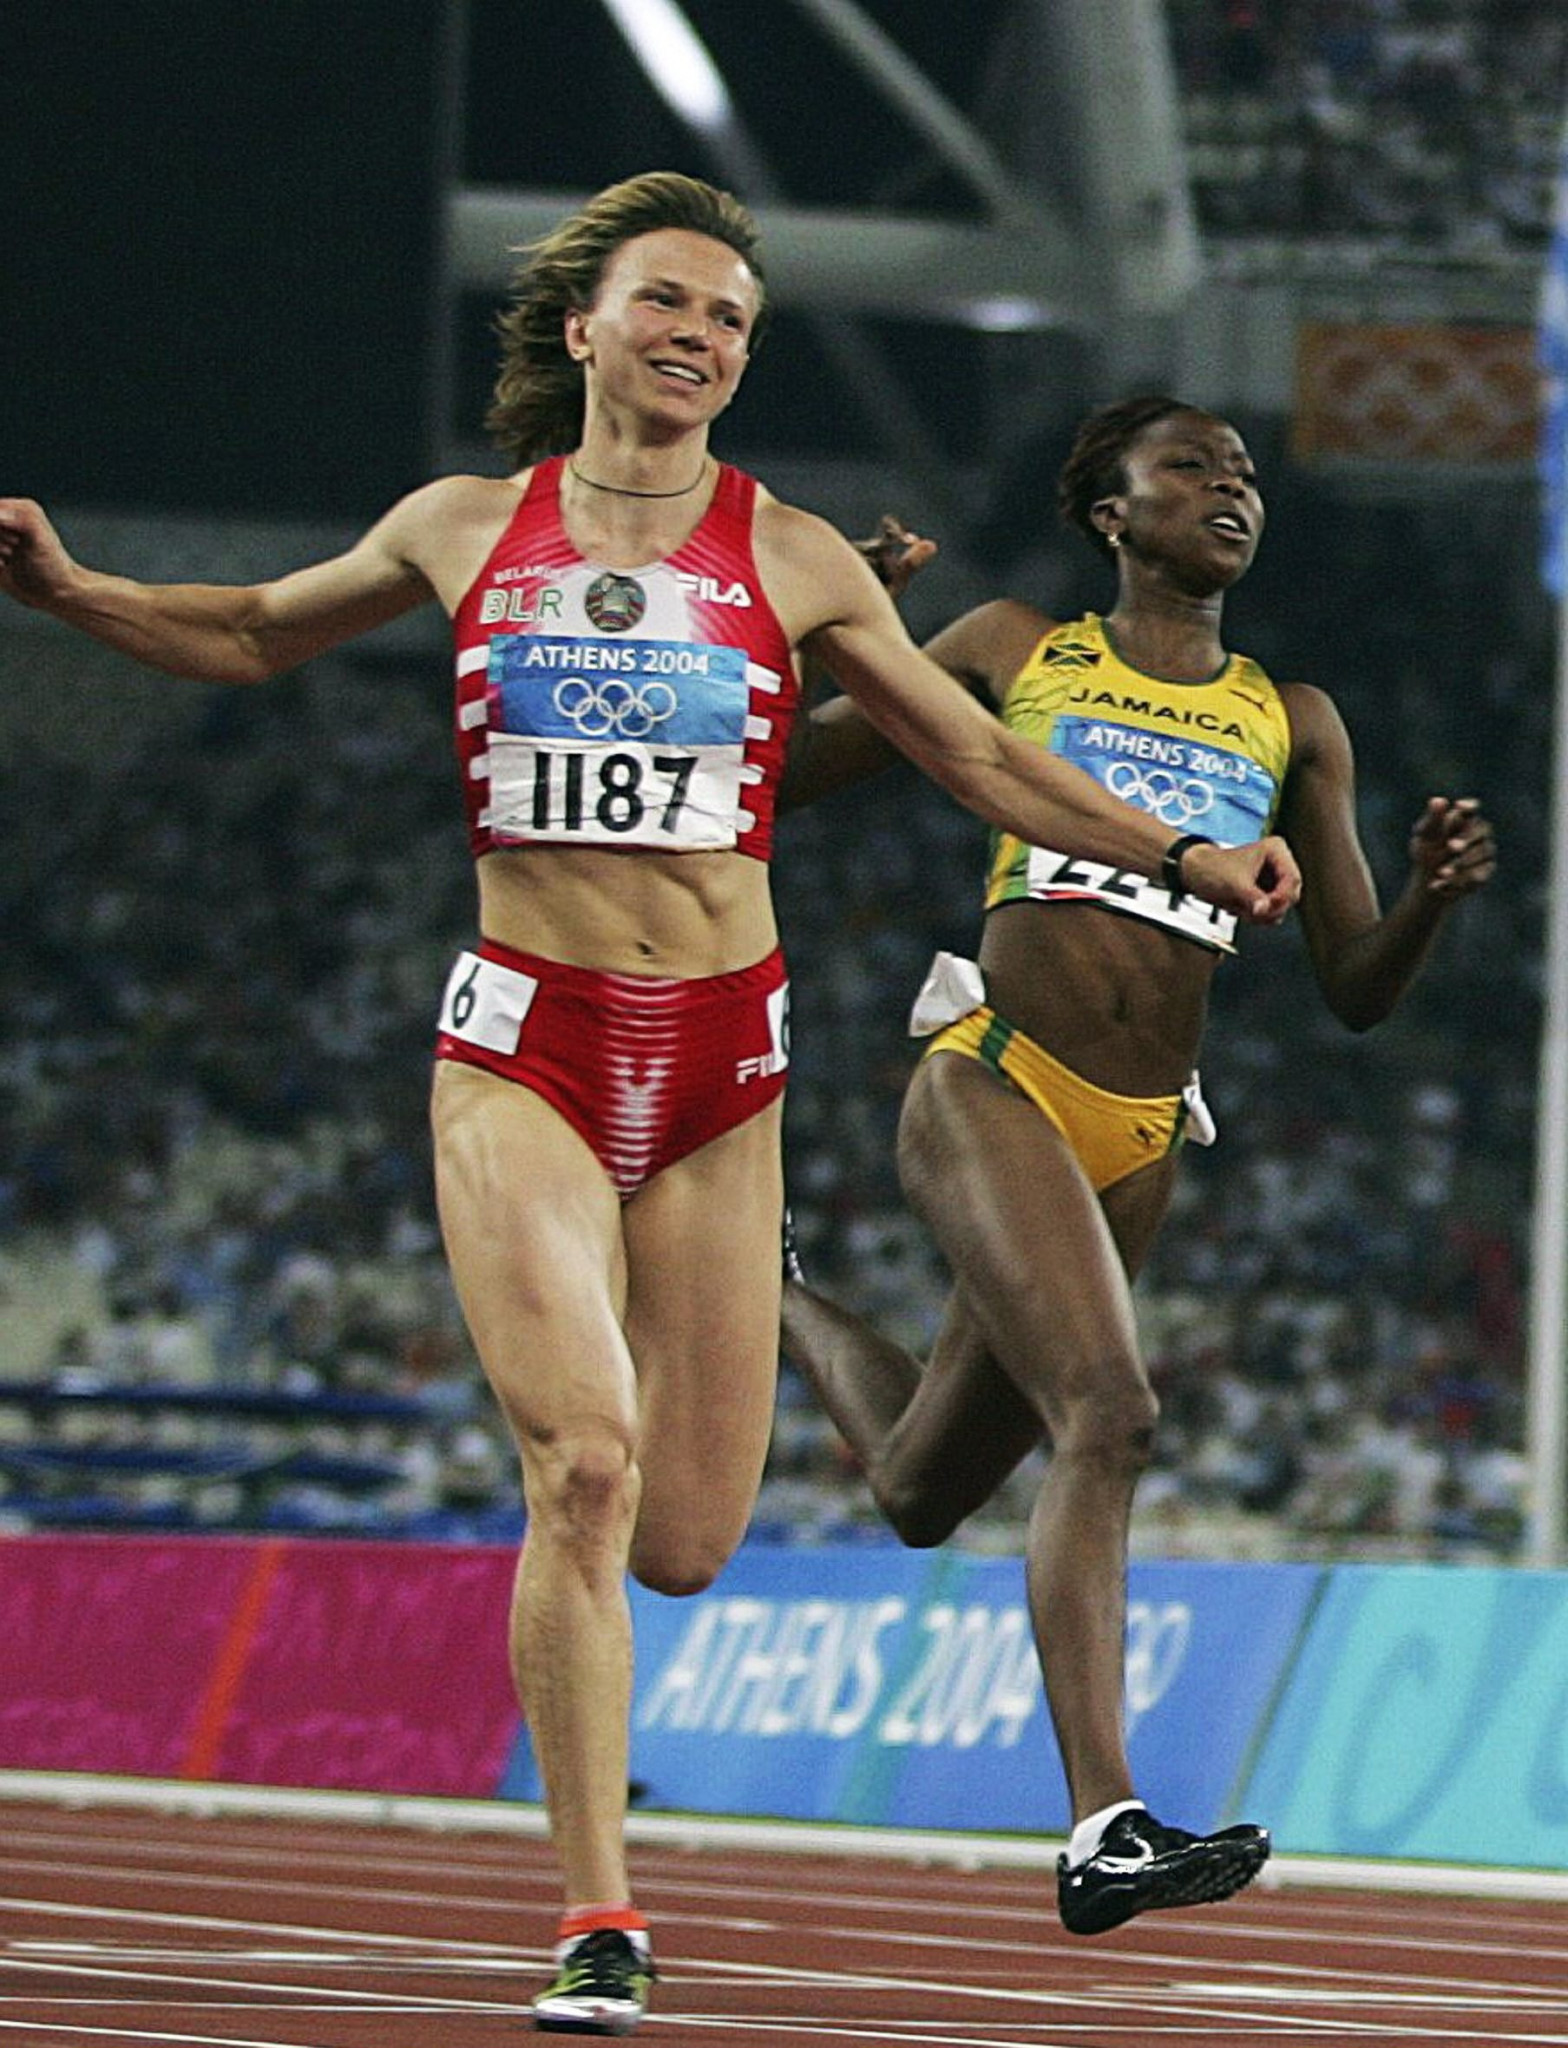 Yulia Nesterenko won the Olympic 100 metres gold medal at Athens 2004 and is an ambassador for Minsk 2019 ©Getty Images